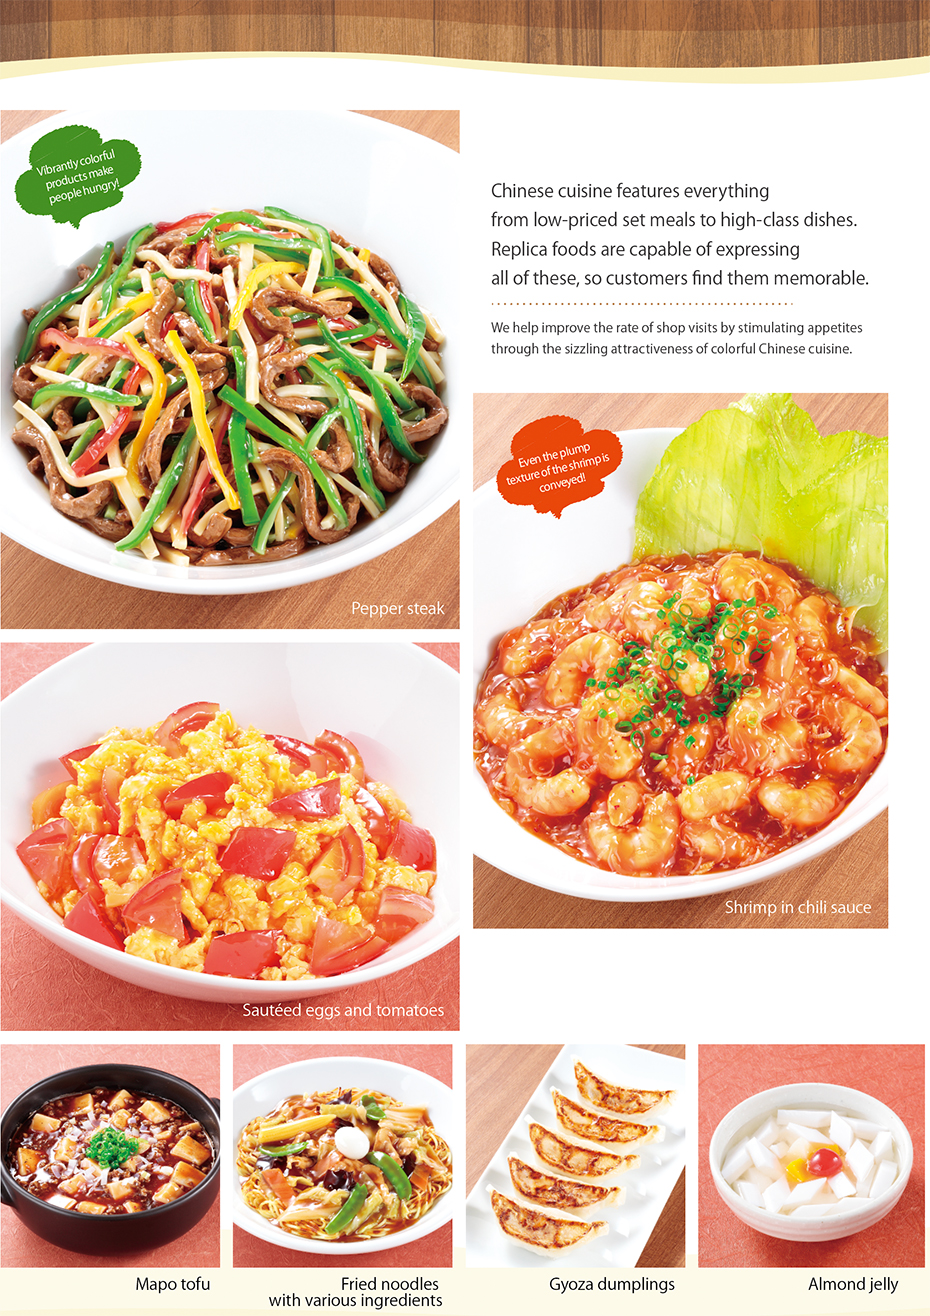 Replica Chinese Foods